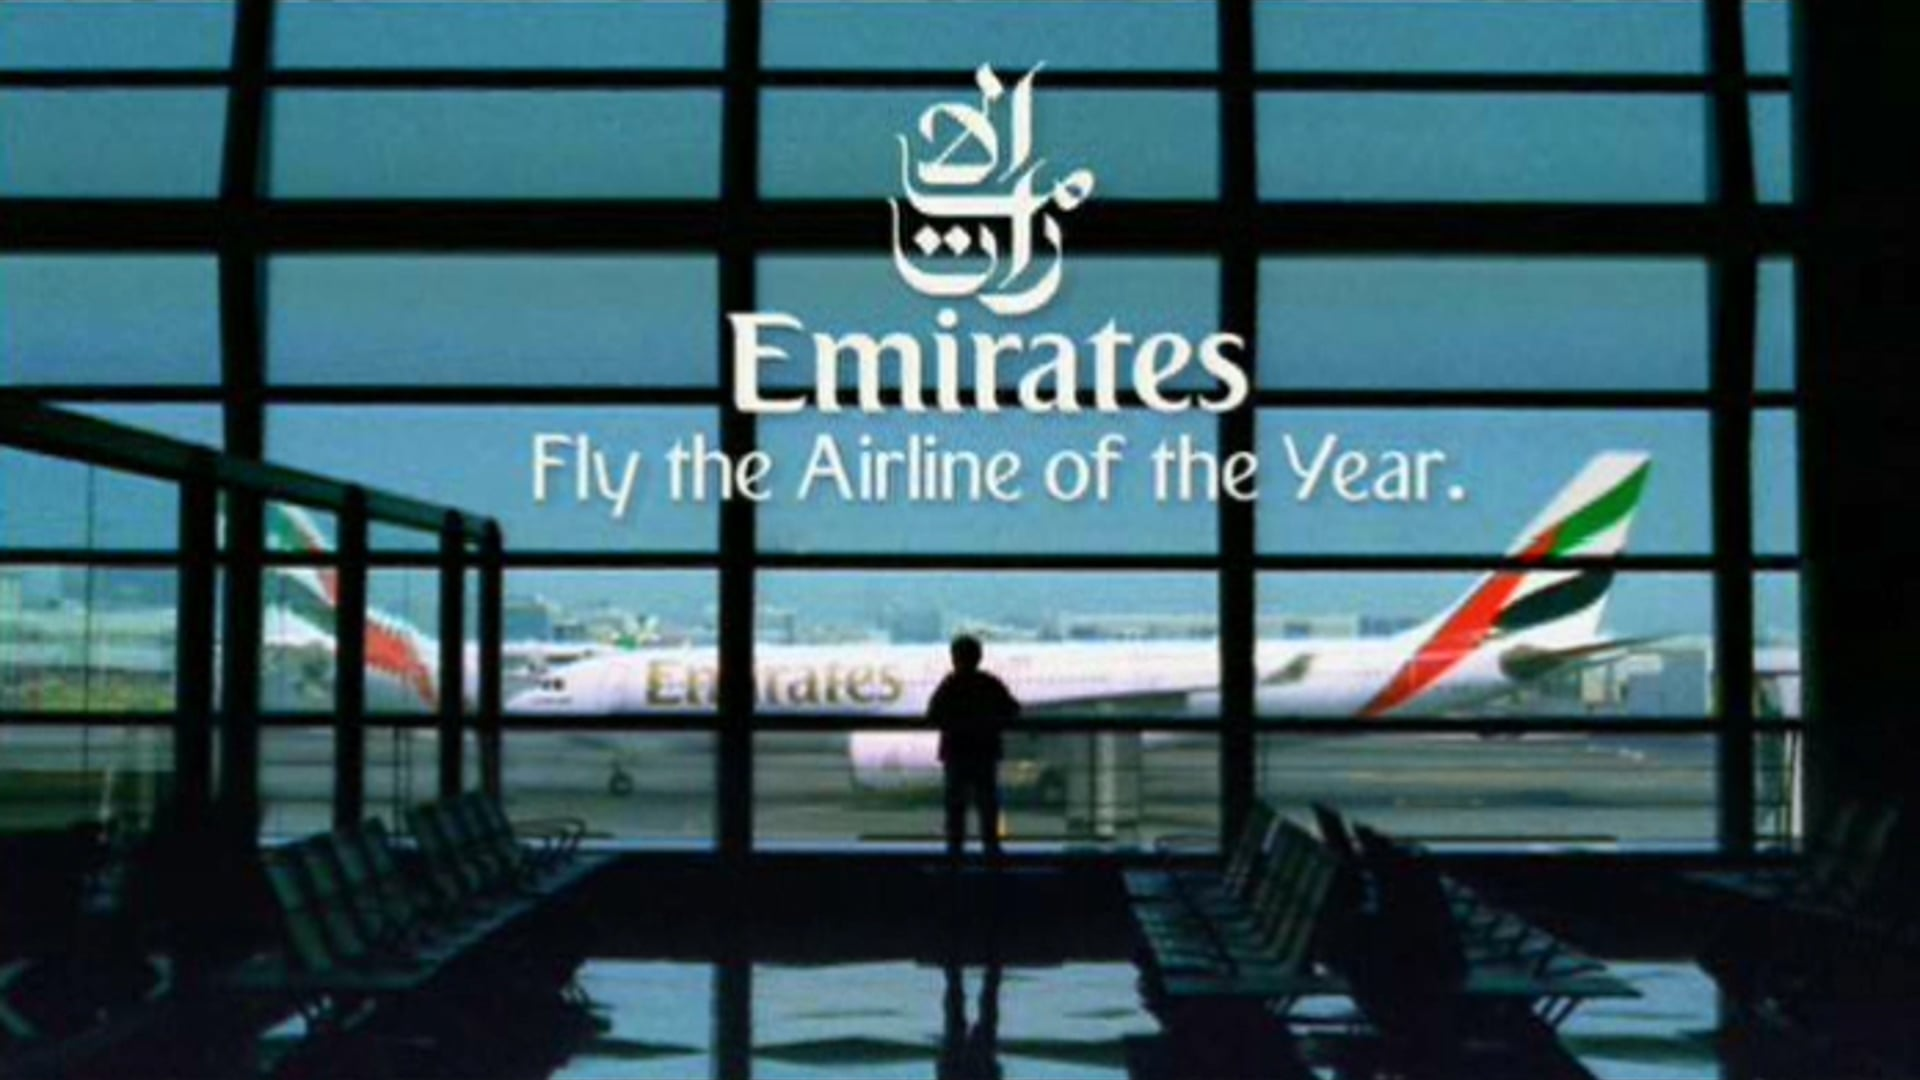 Emirates - First Times